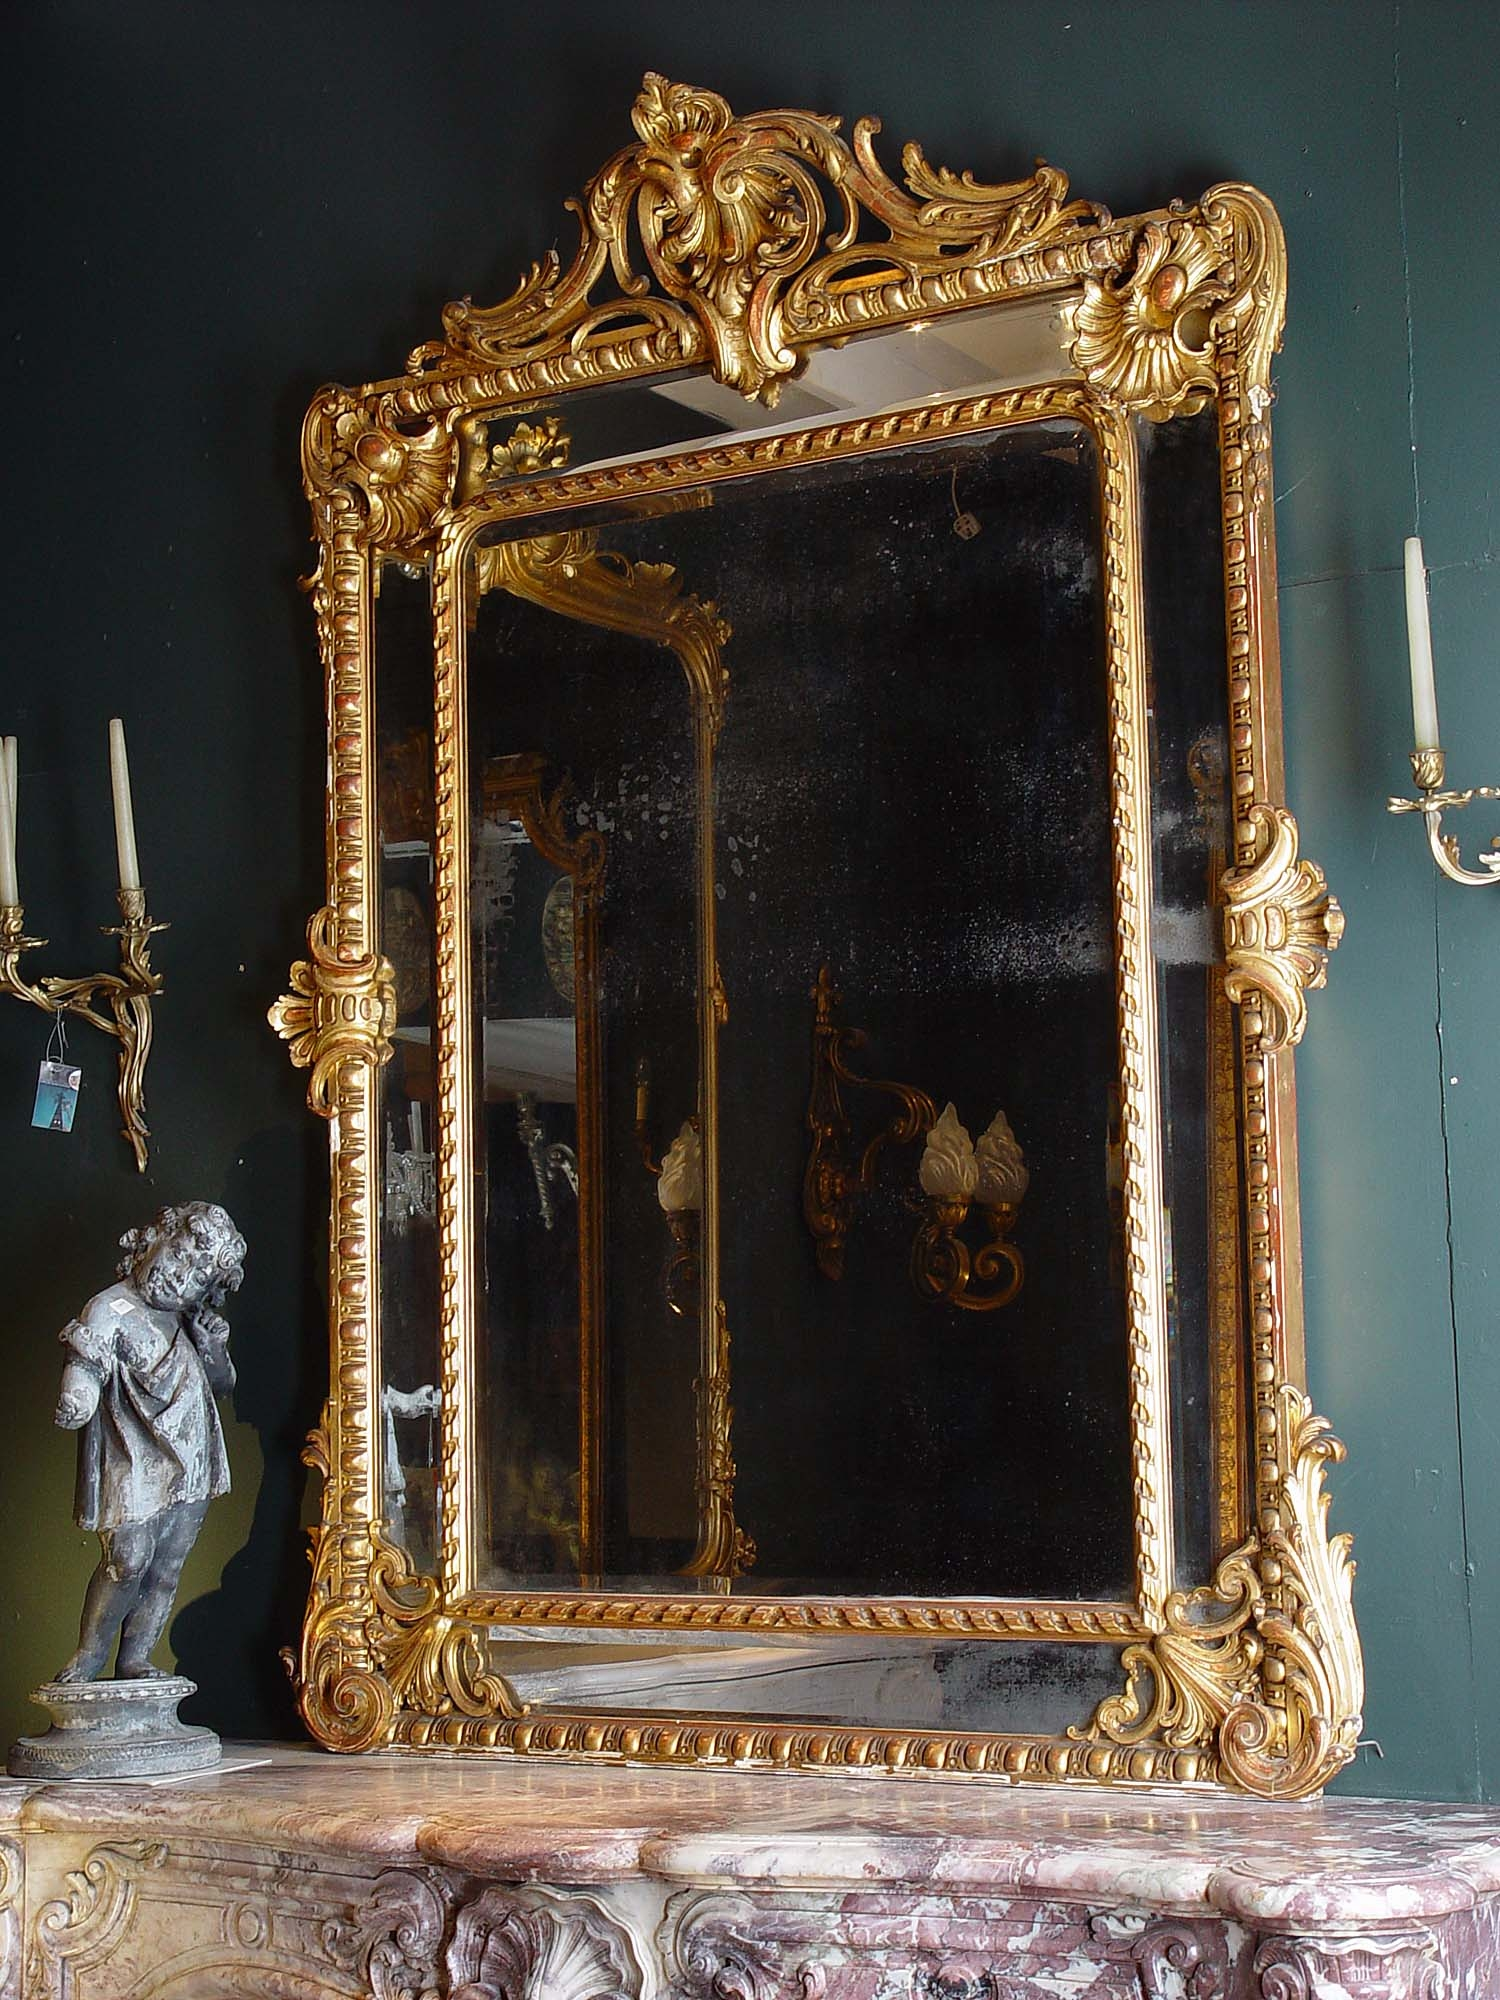 Big Mirrors For Sale 38 Cool Ideas For Mirror Harpsoundsco With Large Old Mirrors For Sale (Image 5 of 15)